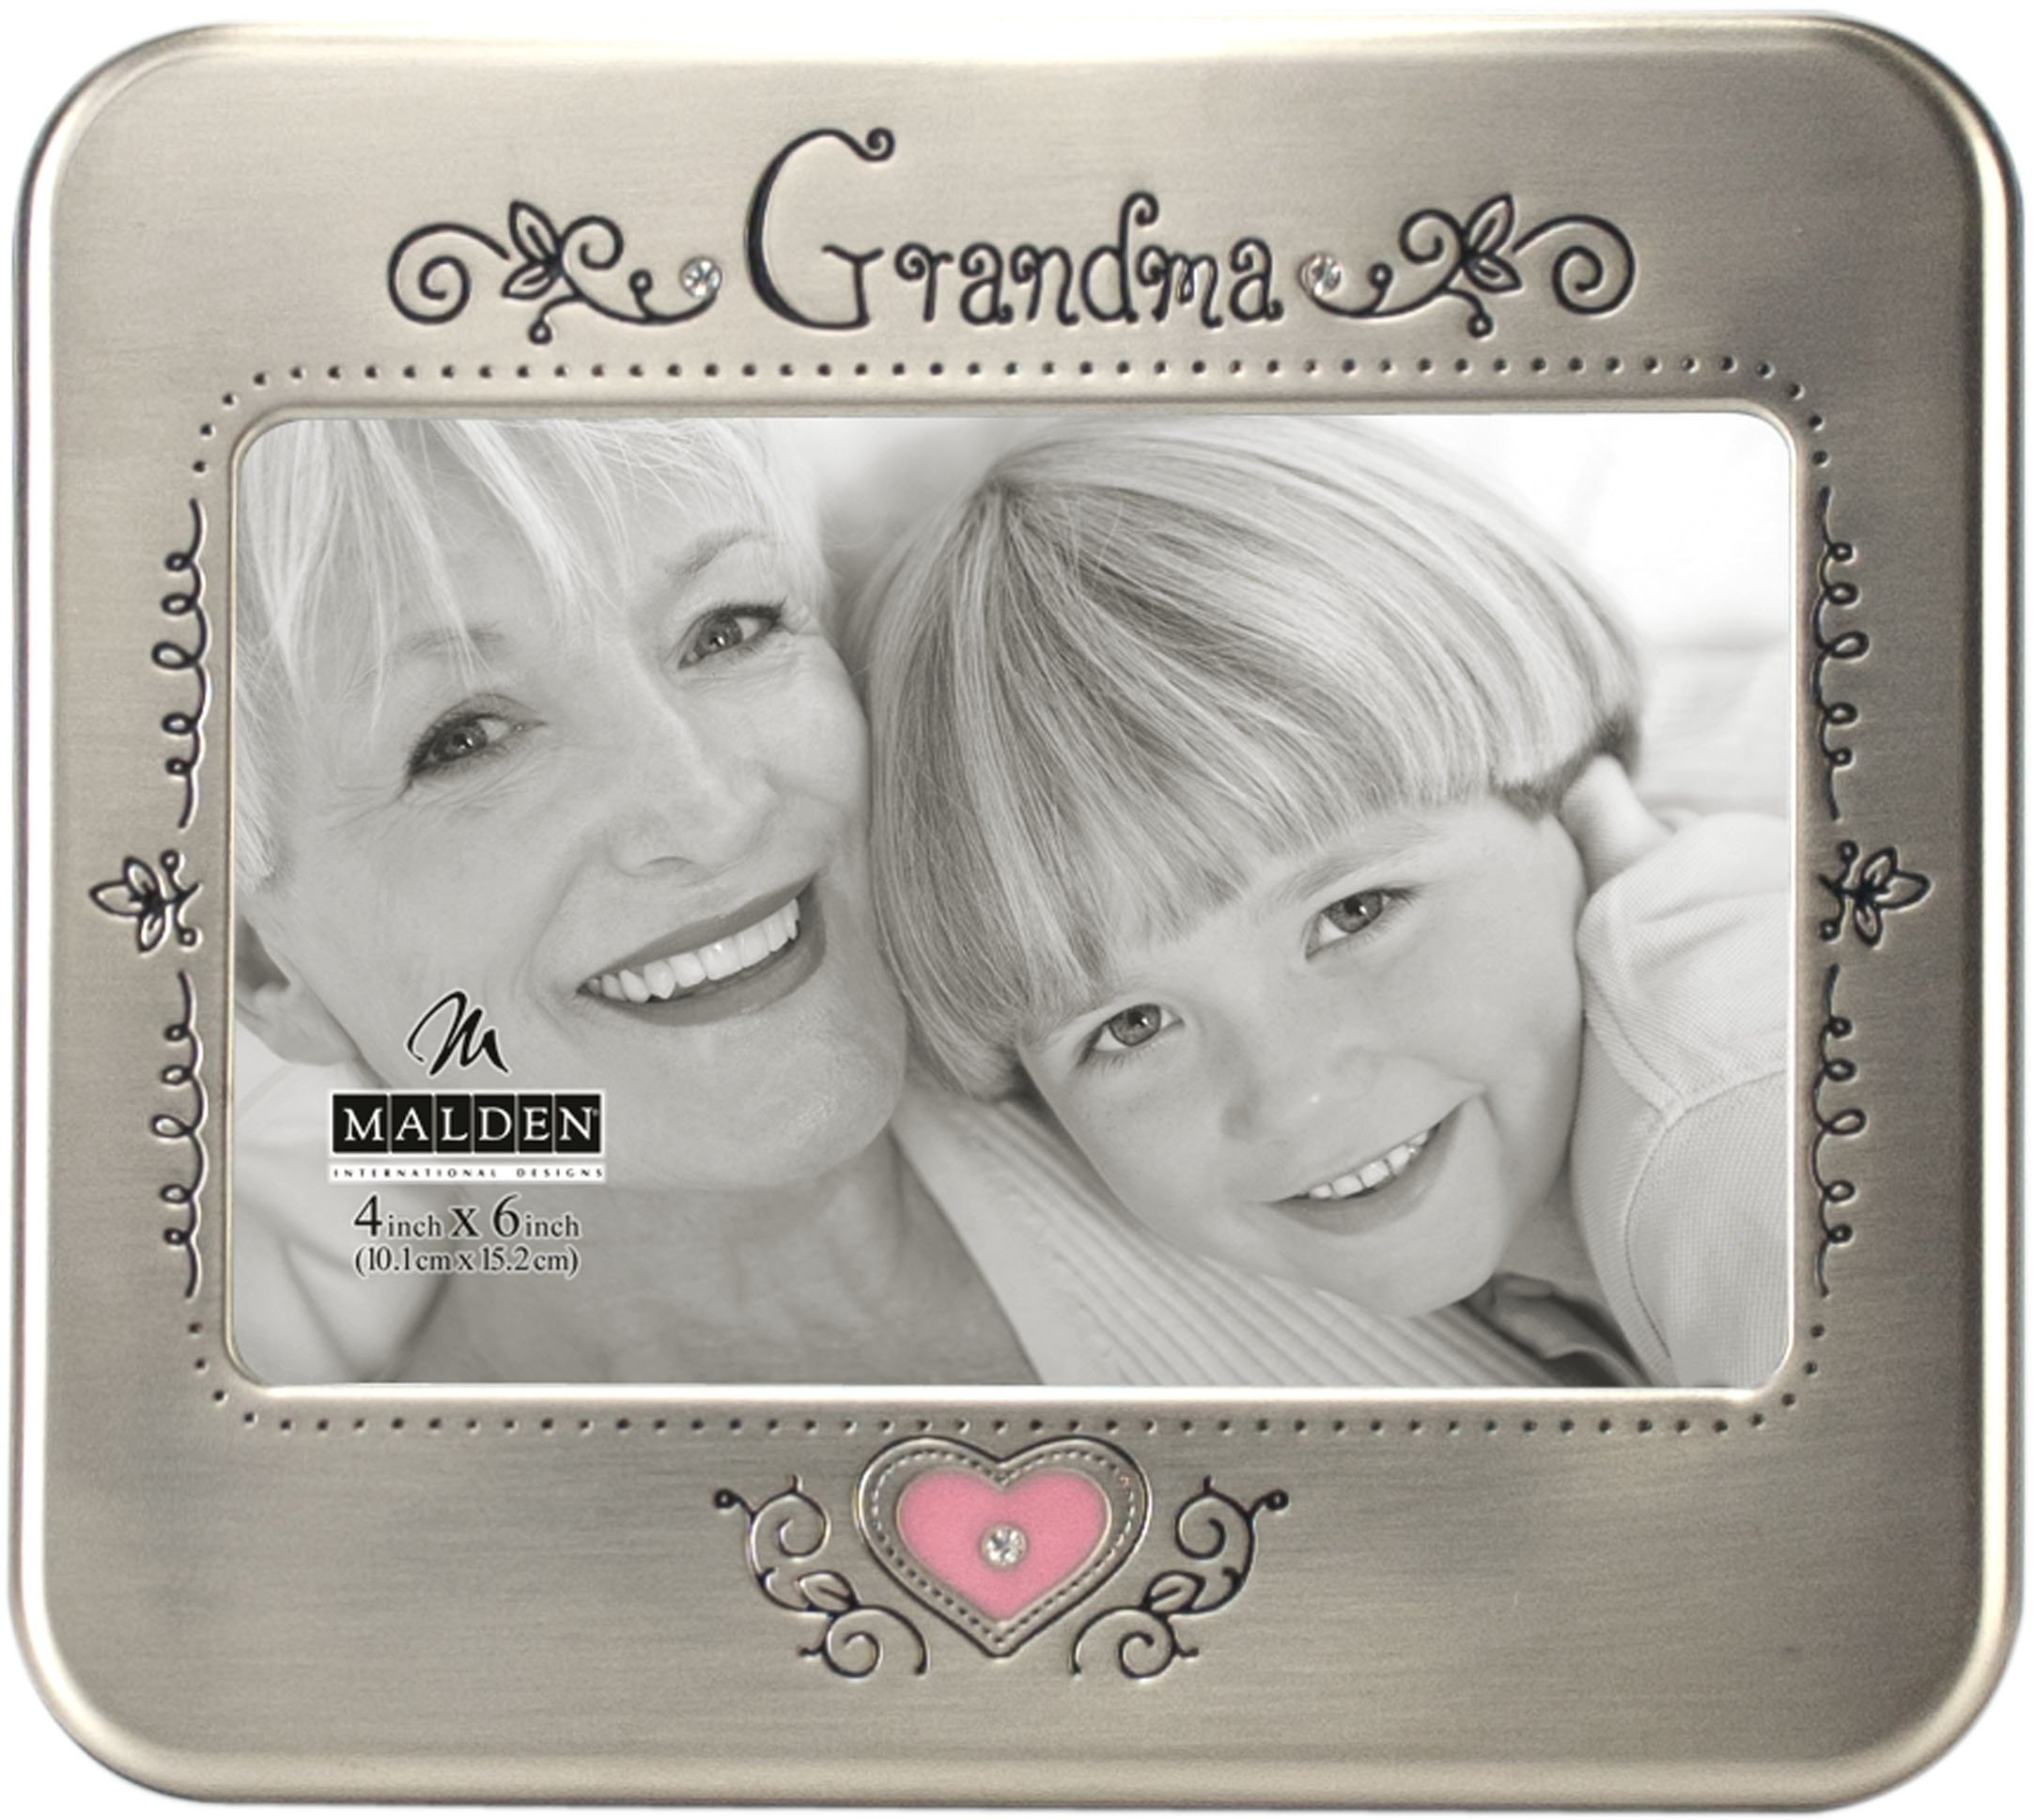 Malden International Designs Serendipity Grandma Metal Shiny Pewter Picture Frame, 4x6, Silver by Malden International Designs